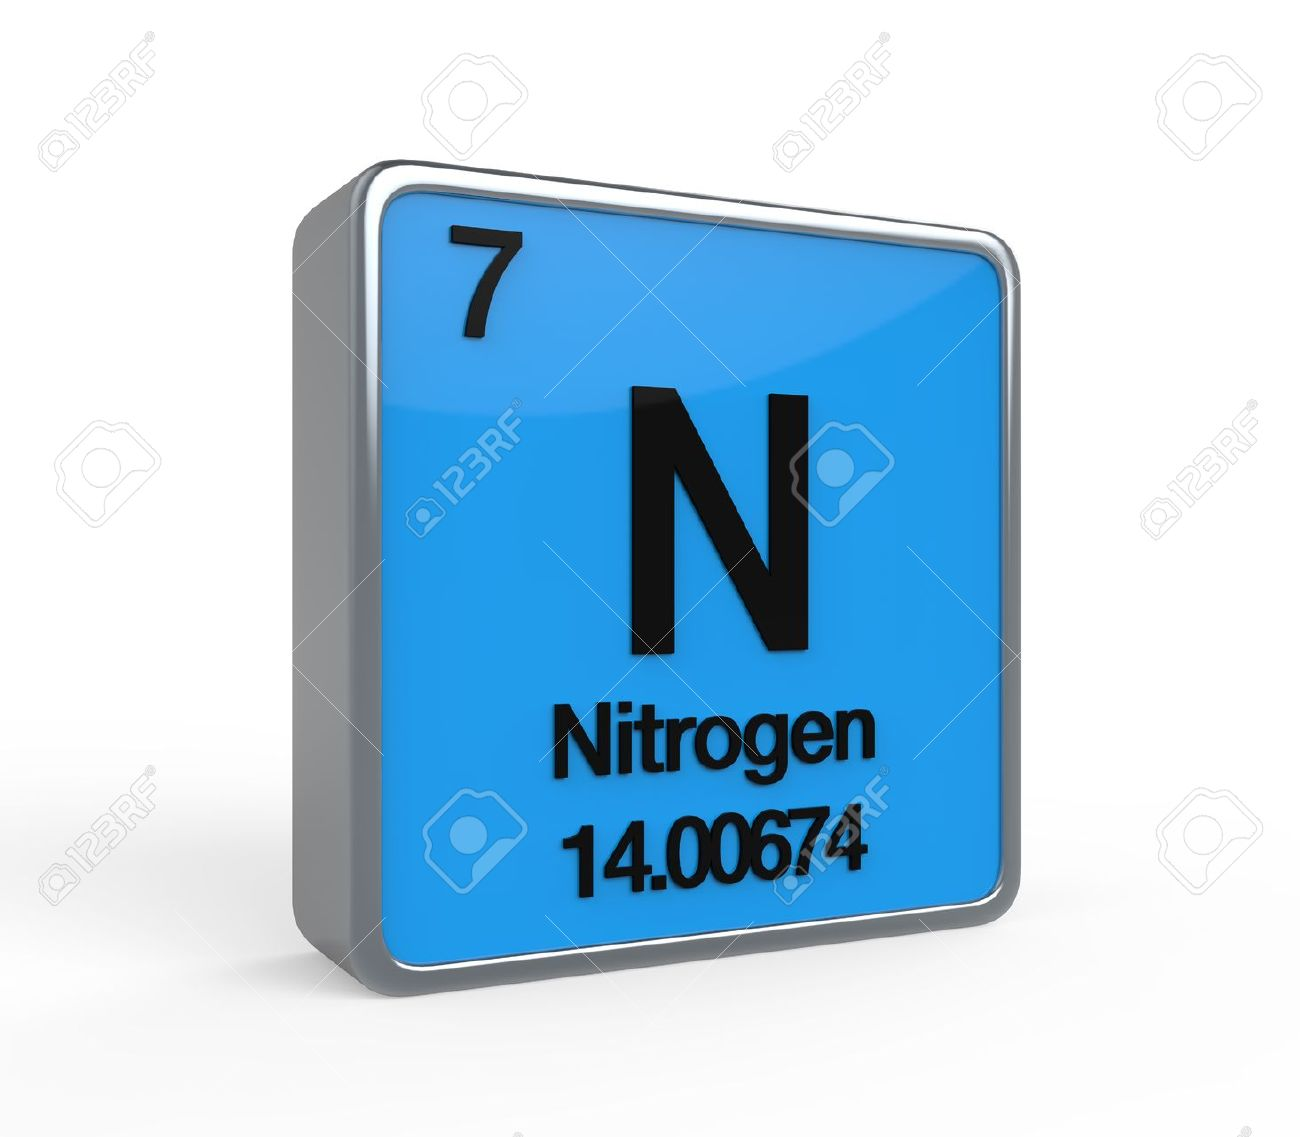 Nitrogen symbol periodic table gallery periodic table images periodic table symbol for salt gallery periodic table images nitrogen symbol periodic table gallery periodic table gamestrikefo Image collections